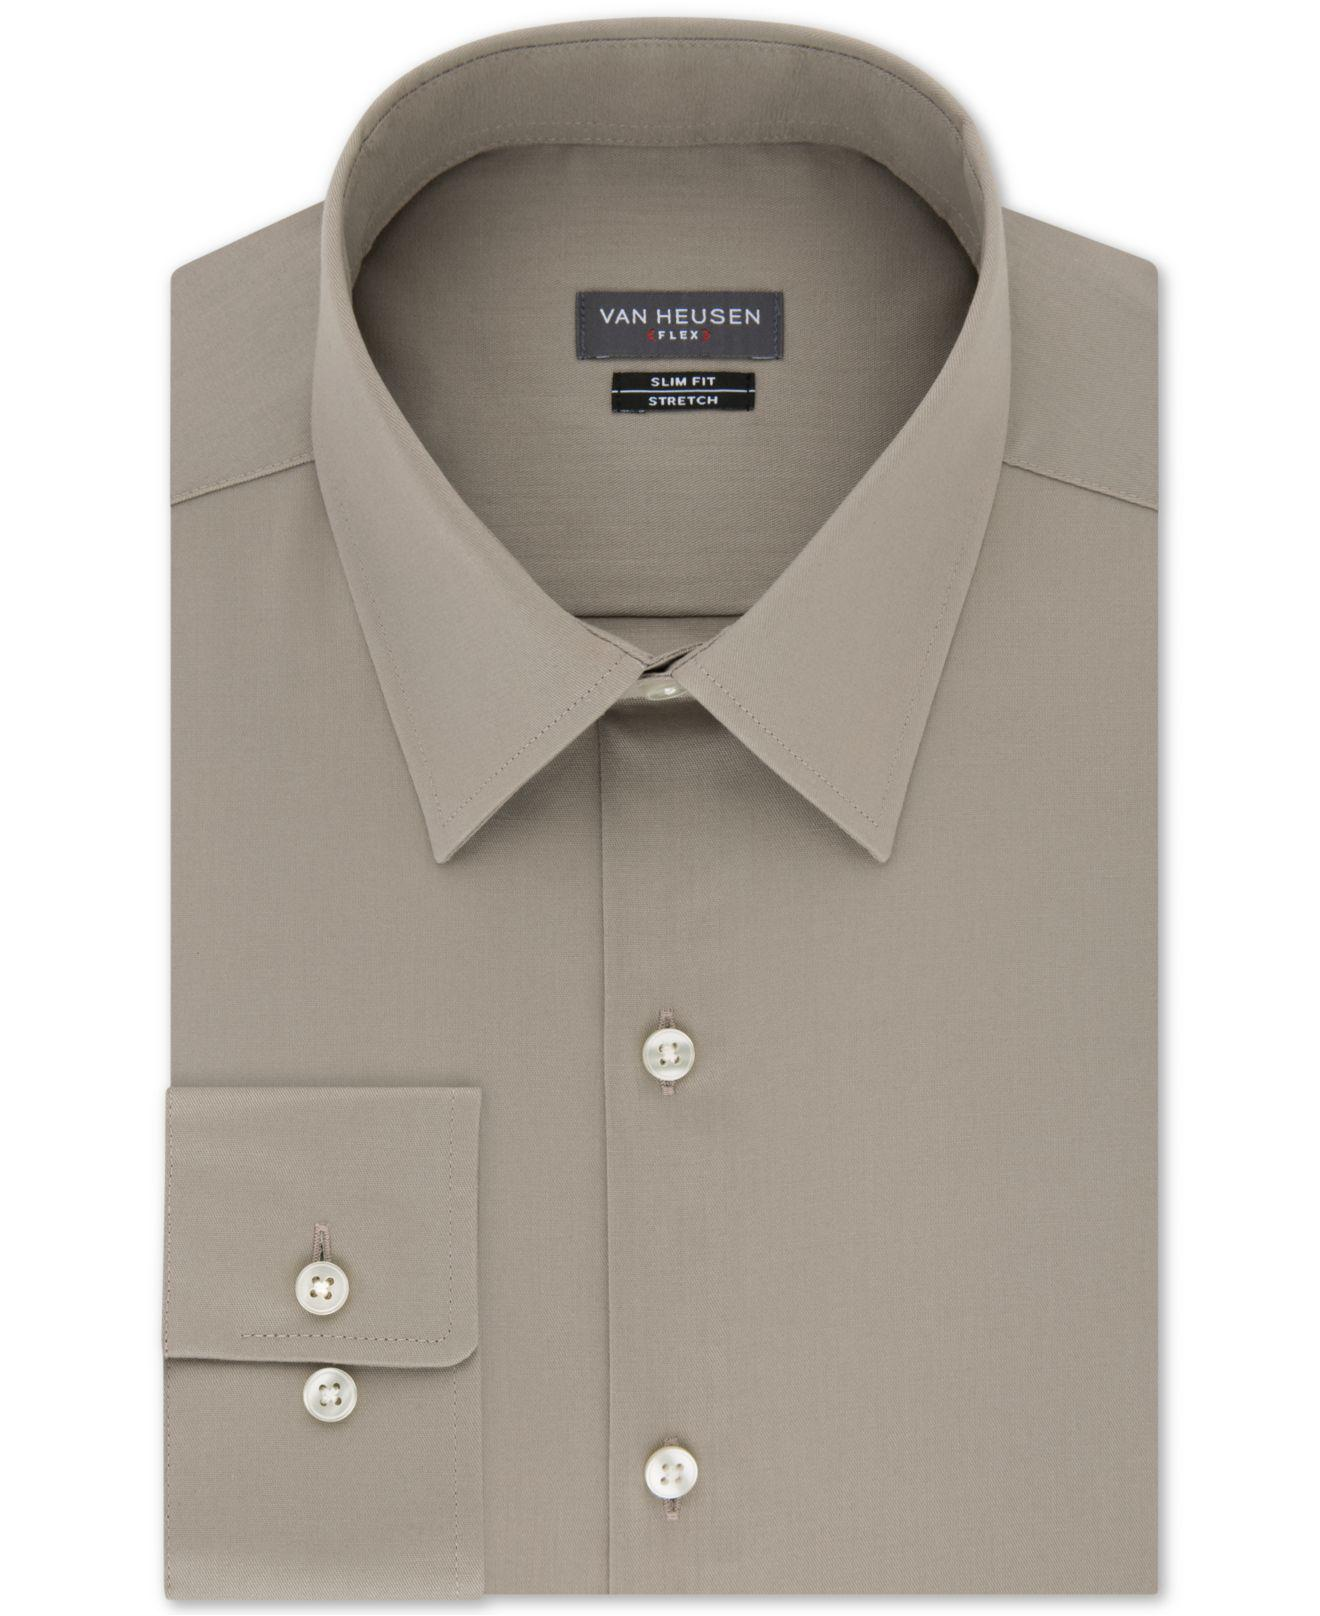 Lyst Van Heusen Slim Fit Flex Collar Stretch Solid Dress Shirt For Men